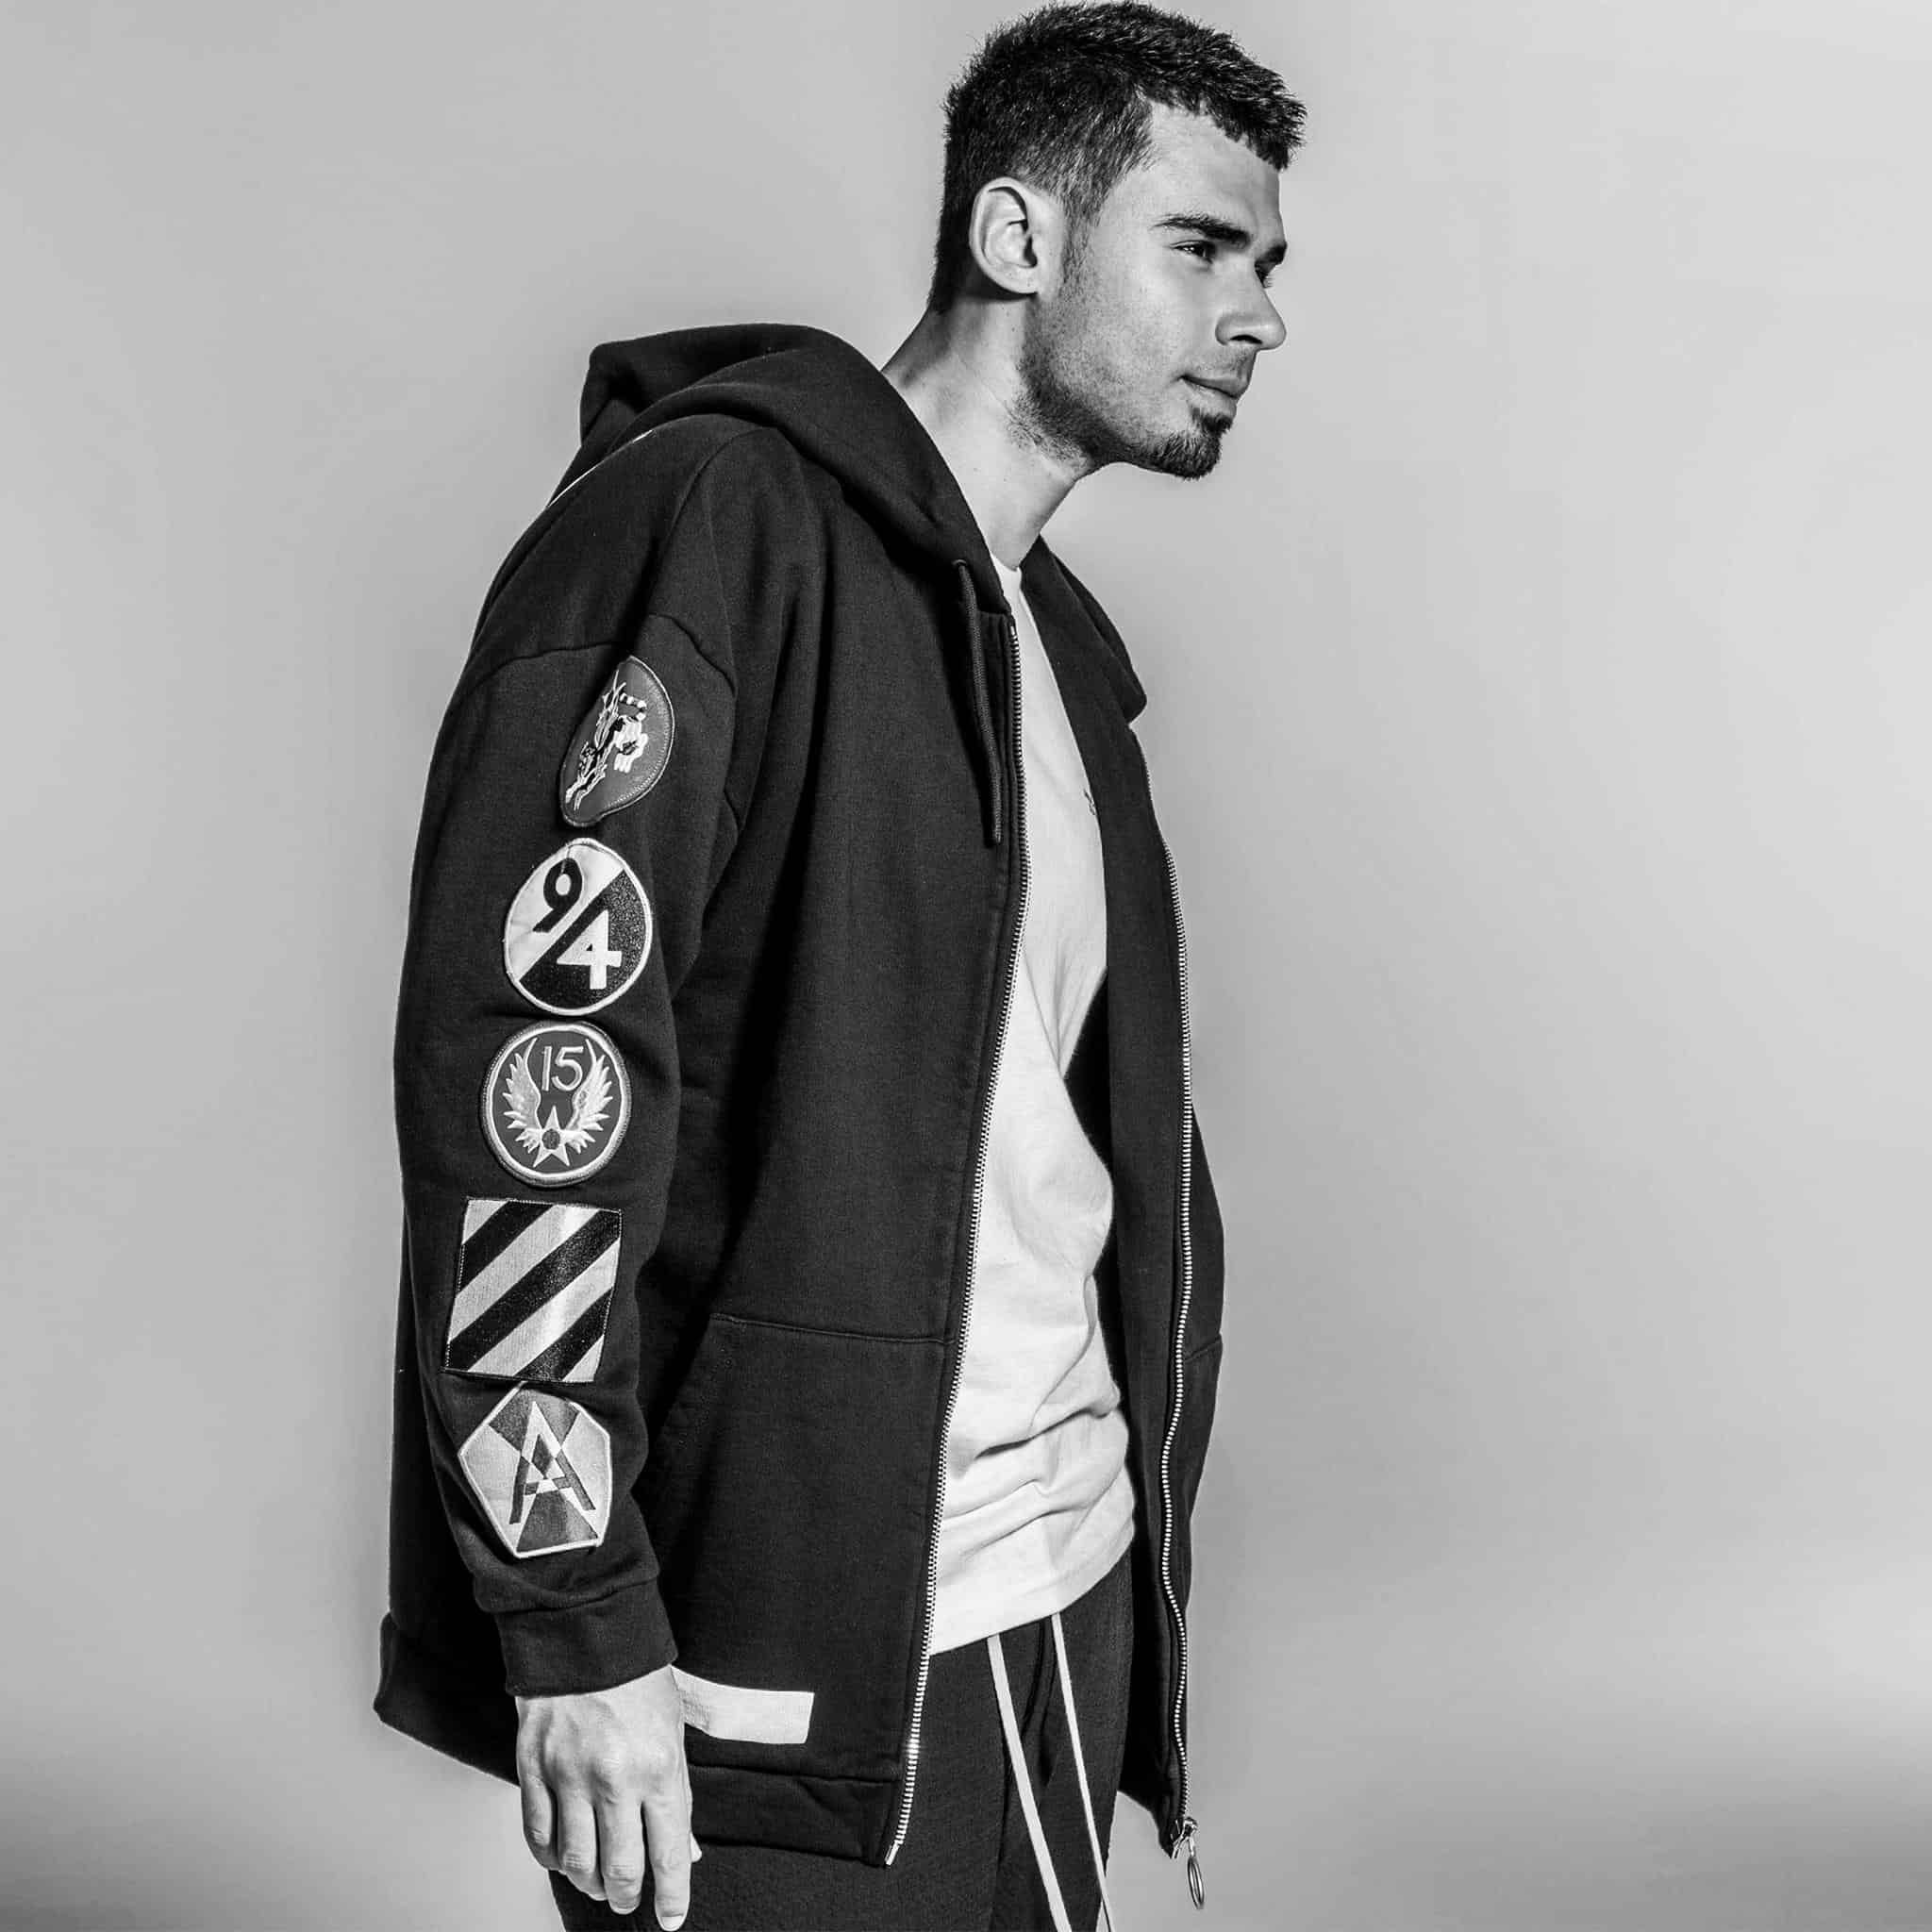 Afrojack released 'Bed of Roses' (Feat. Stanaj) as This Valentine's Day gift! [Free Download]